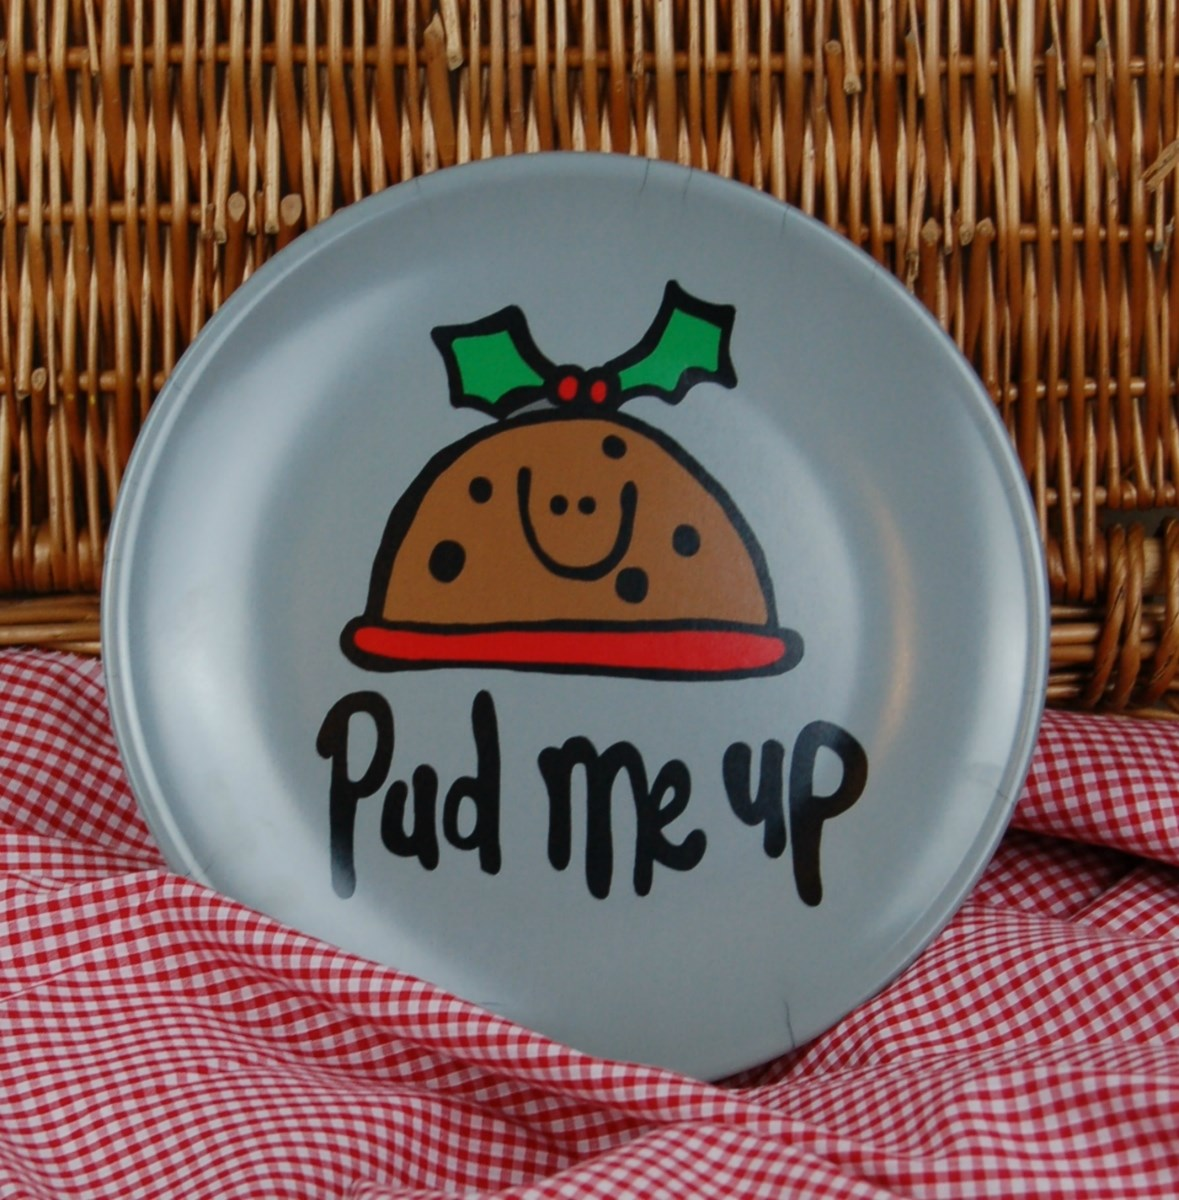 'Pud Me Up' melamine plate